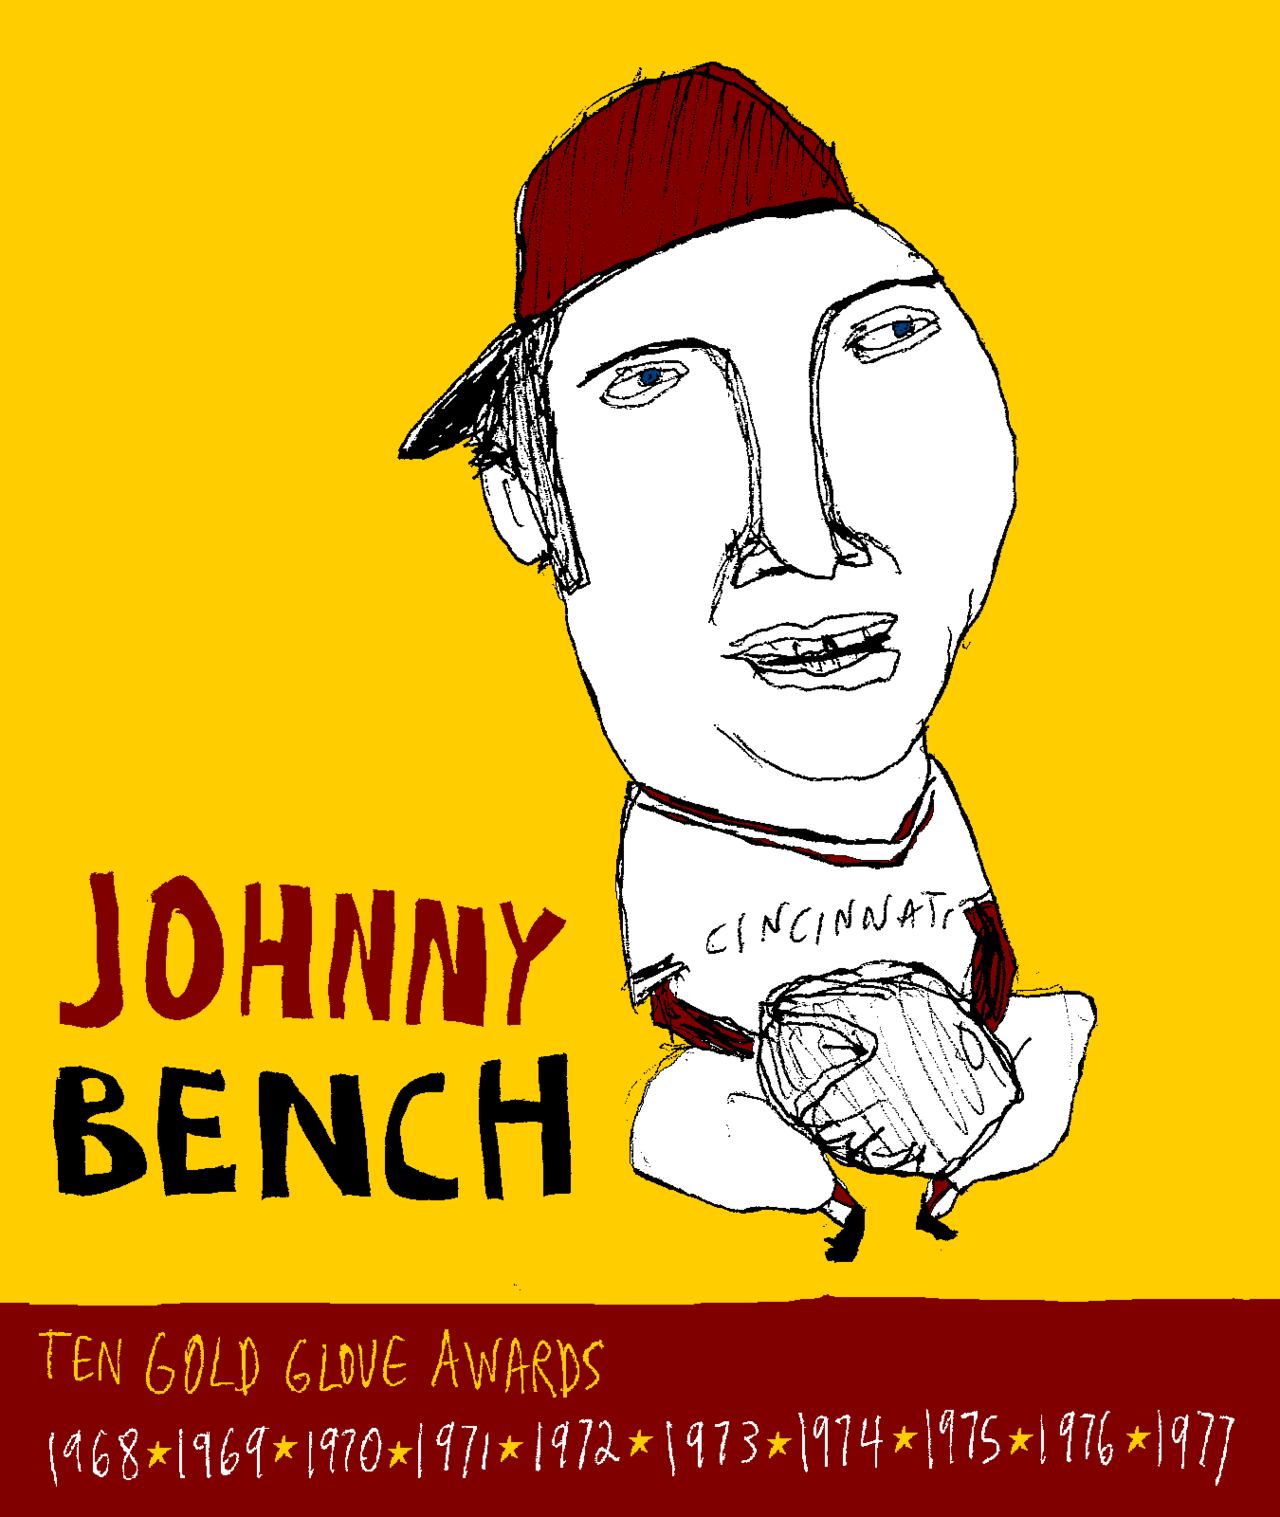 Johnny Bench Cincinnati Reds… For more detail go to http://baseball-art.blogspot.com/2012/05/johnny-bench.html